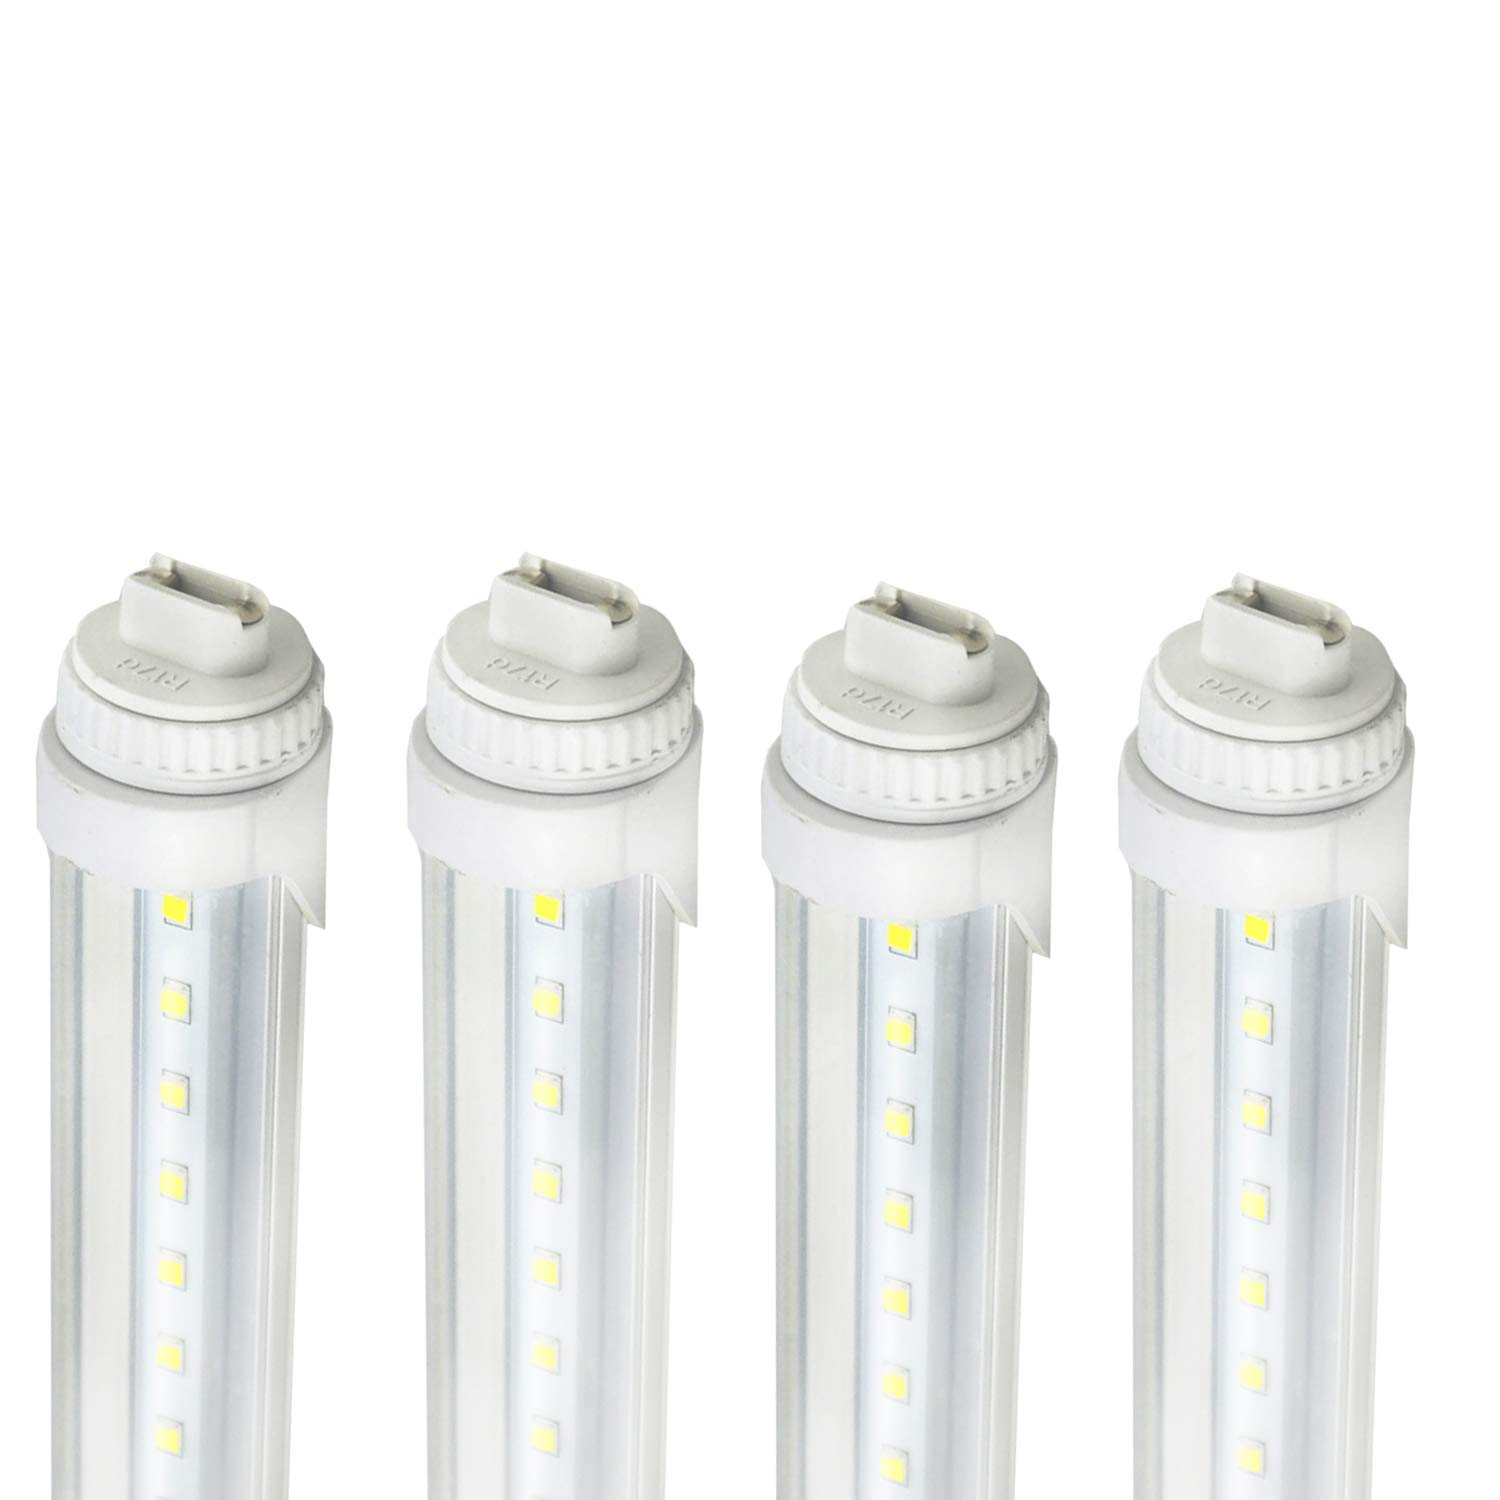 30W R17D Base 6 Feet LED Tube Light Fluorescent Replacement for F72T12/CW/HO (R17D 6FT 4Pack)